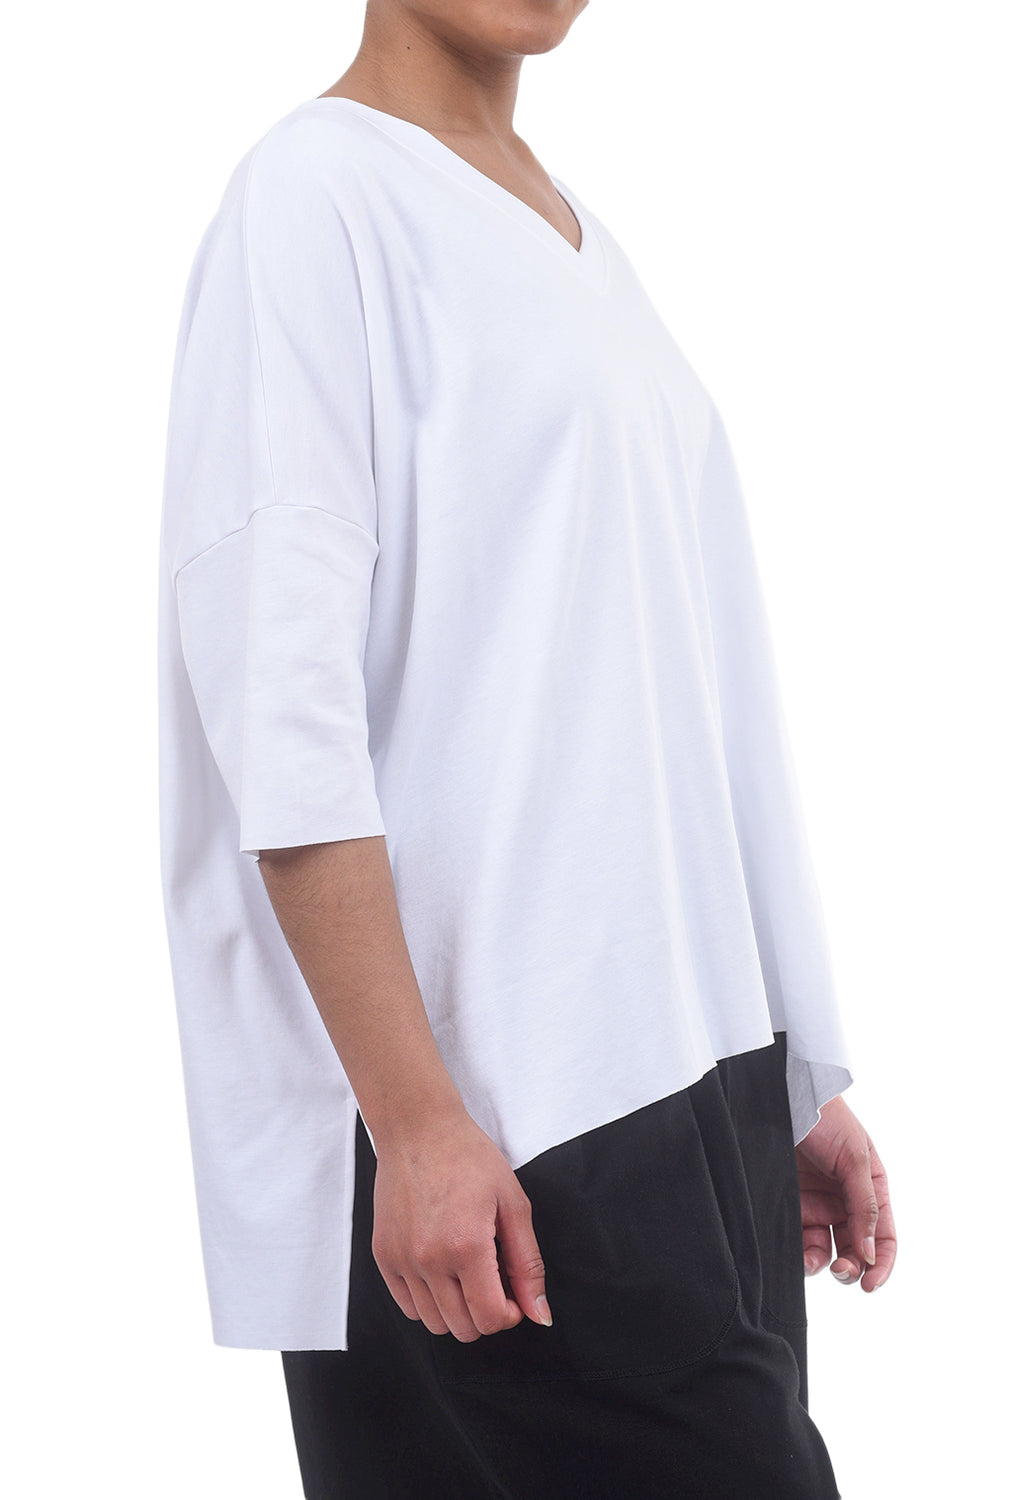 Planet S/S Vee Tee, White One Size White